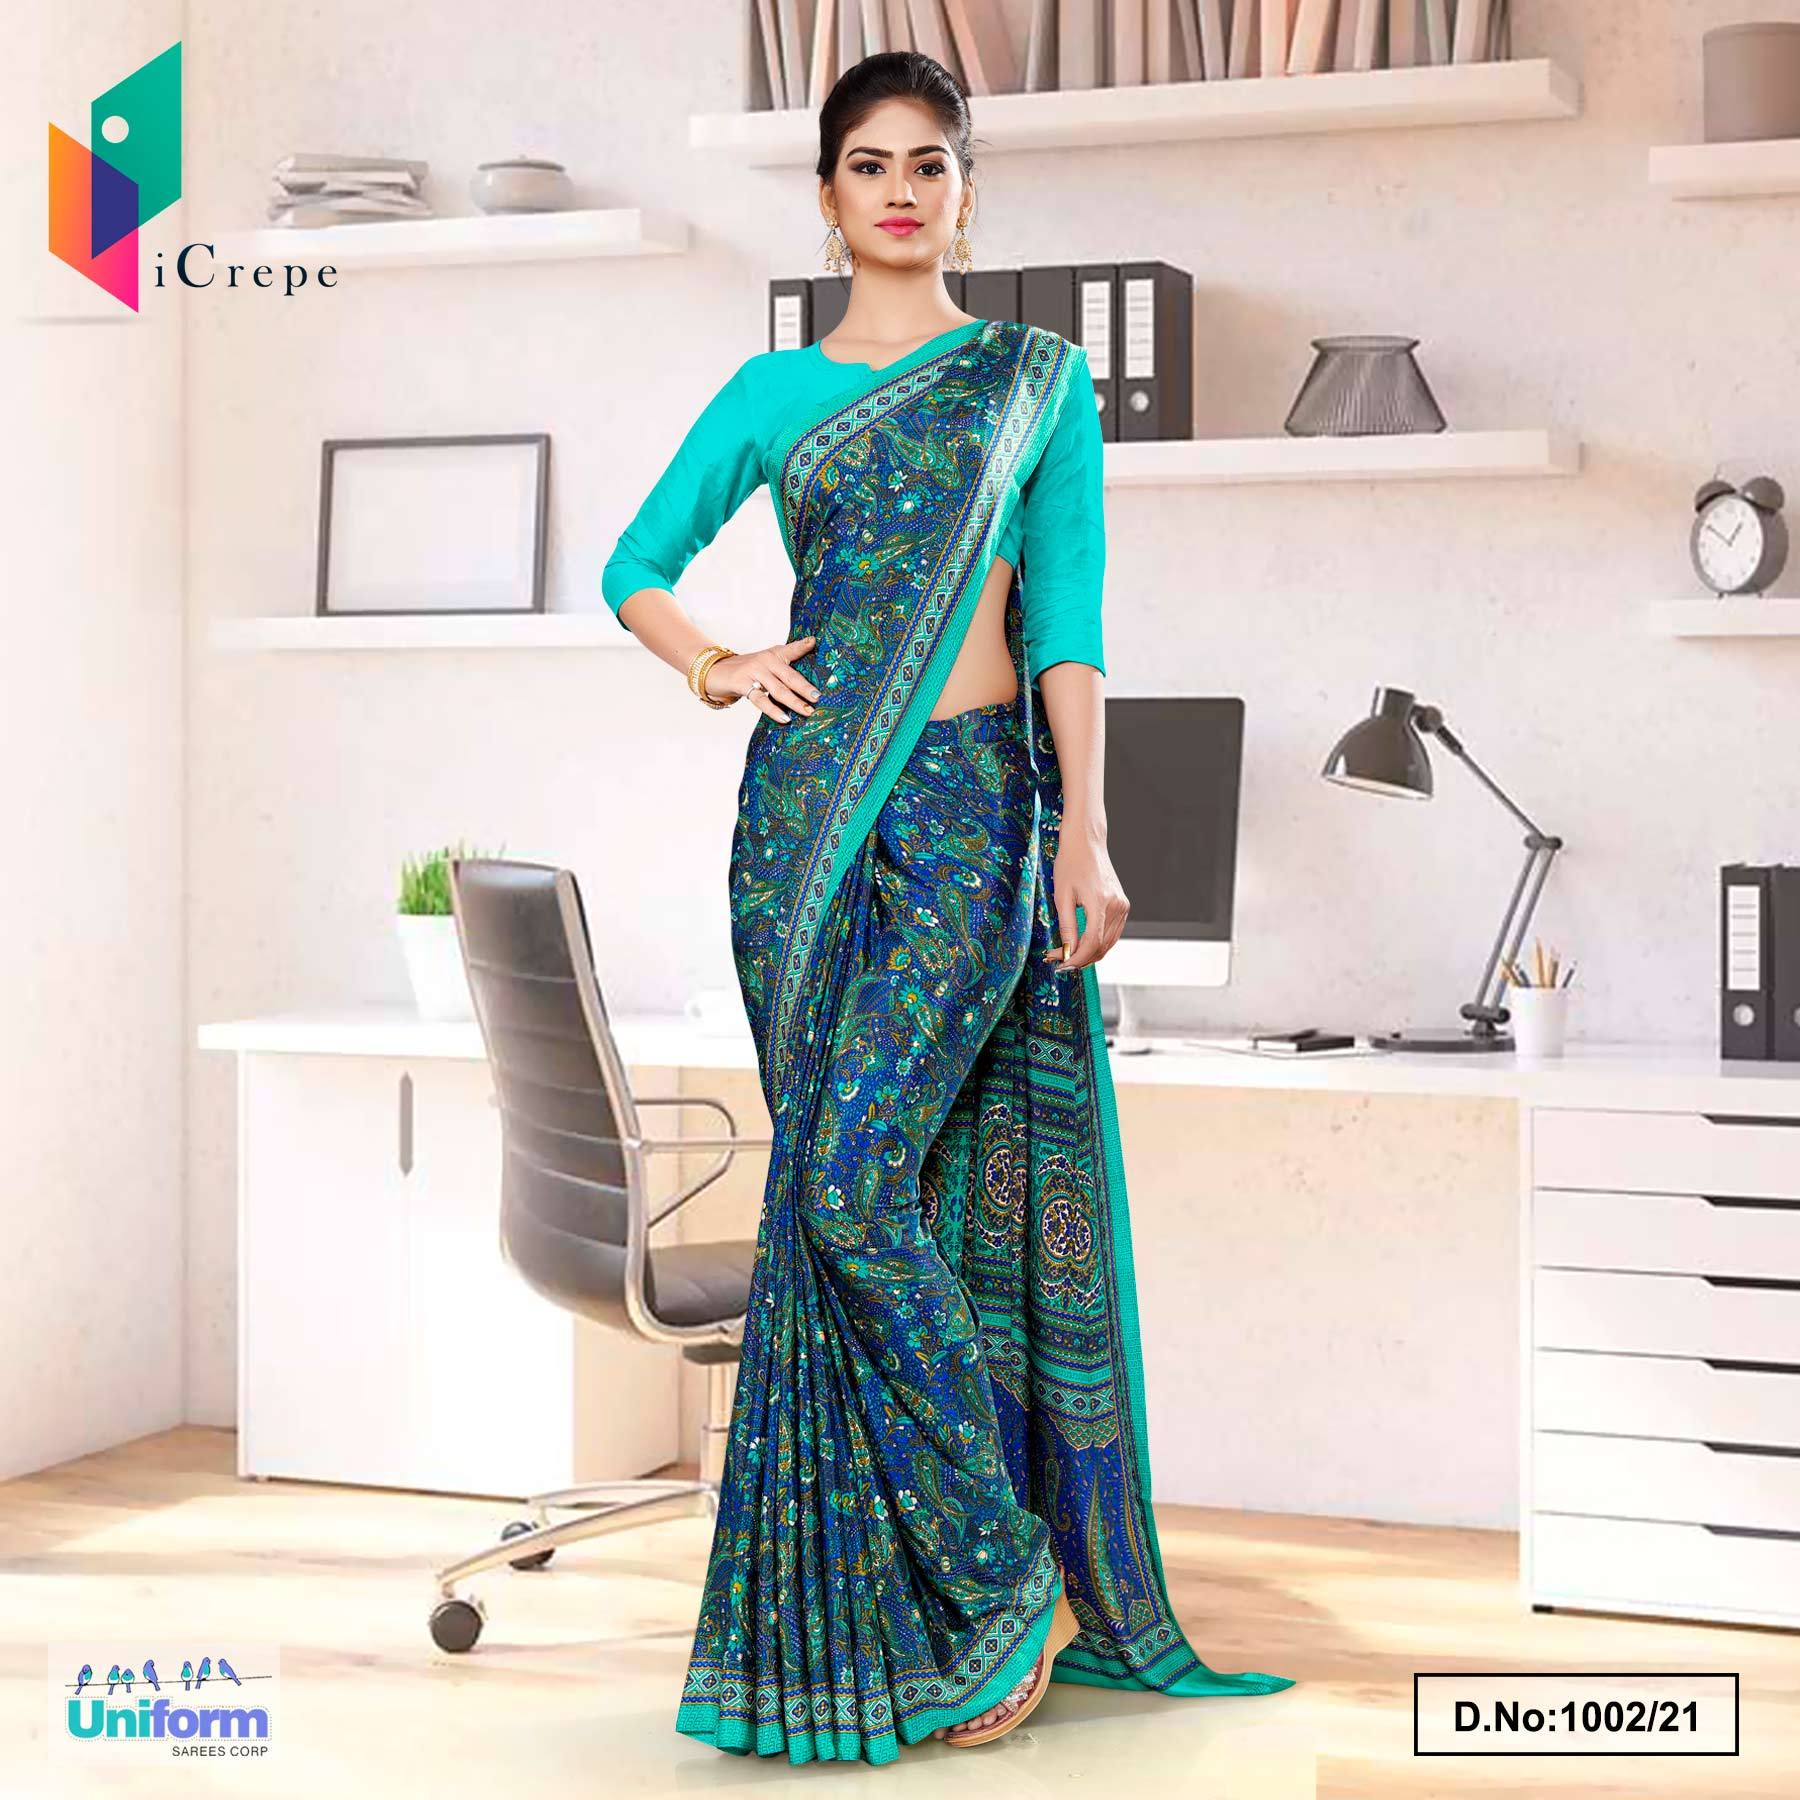 Blue Green Premium Paisley Print Italian Crepe Saree for Teachers Uniform Sarees